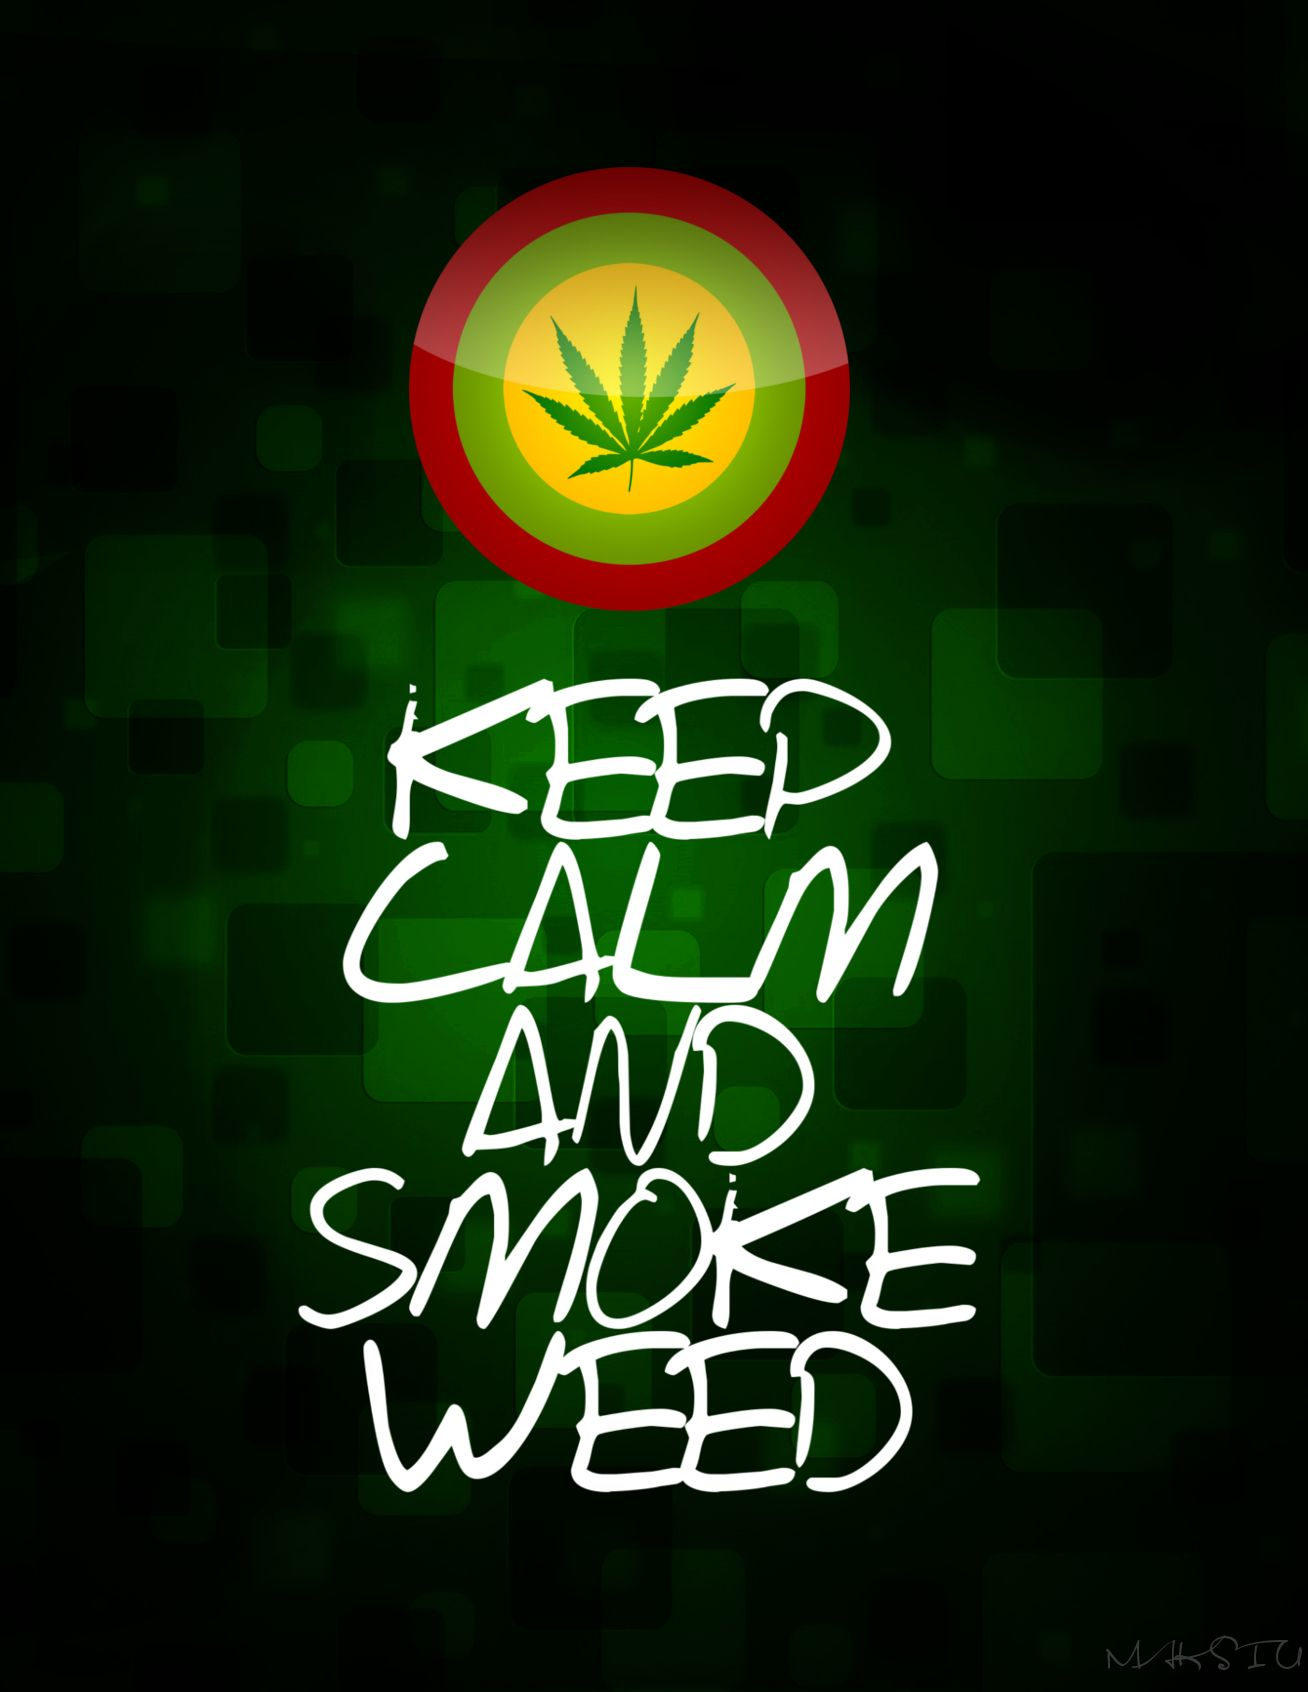 Keep Calm And Smoke Weed Wallpaper Images Hd 1080P